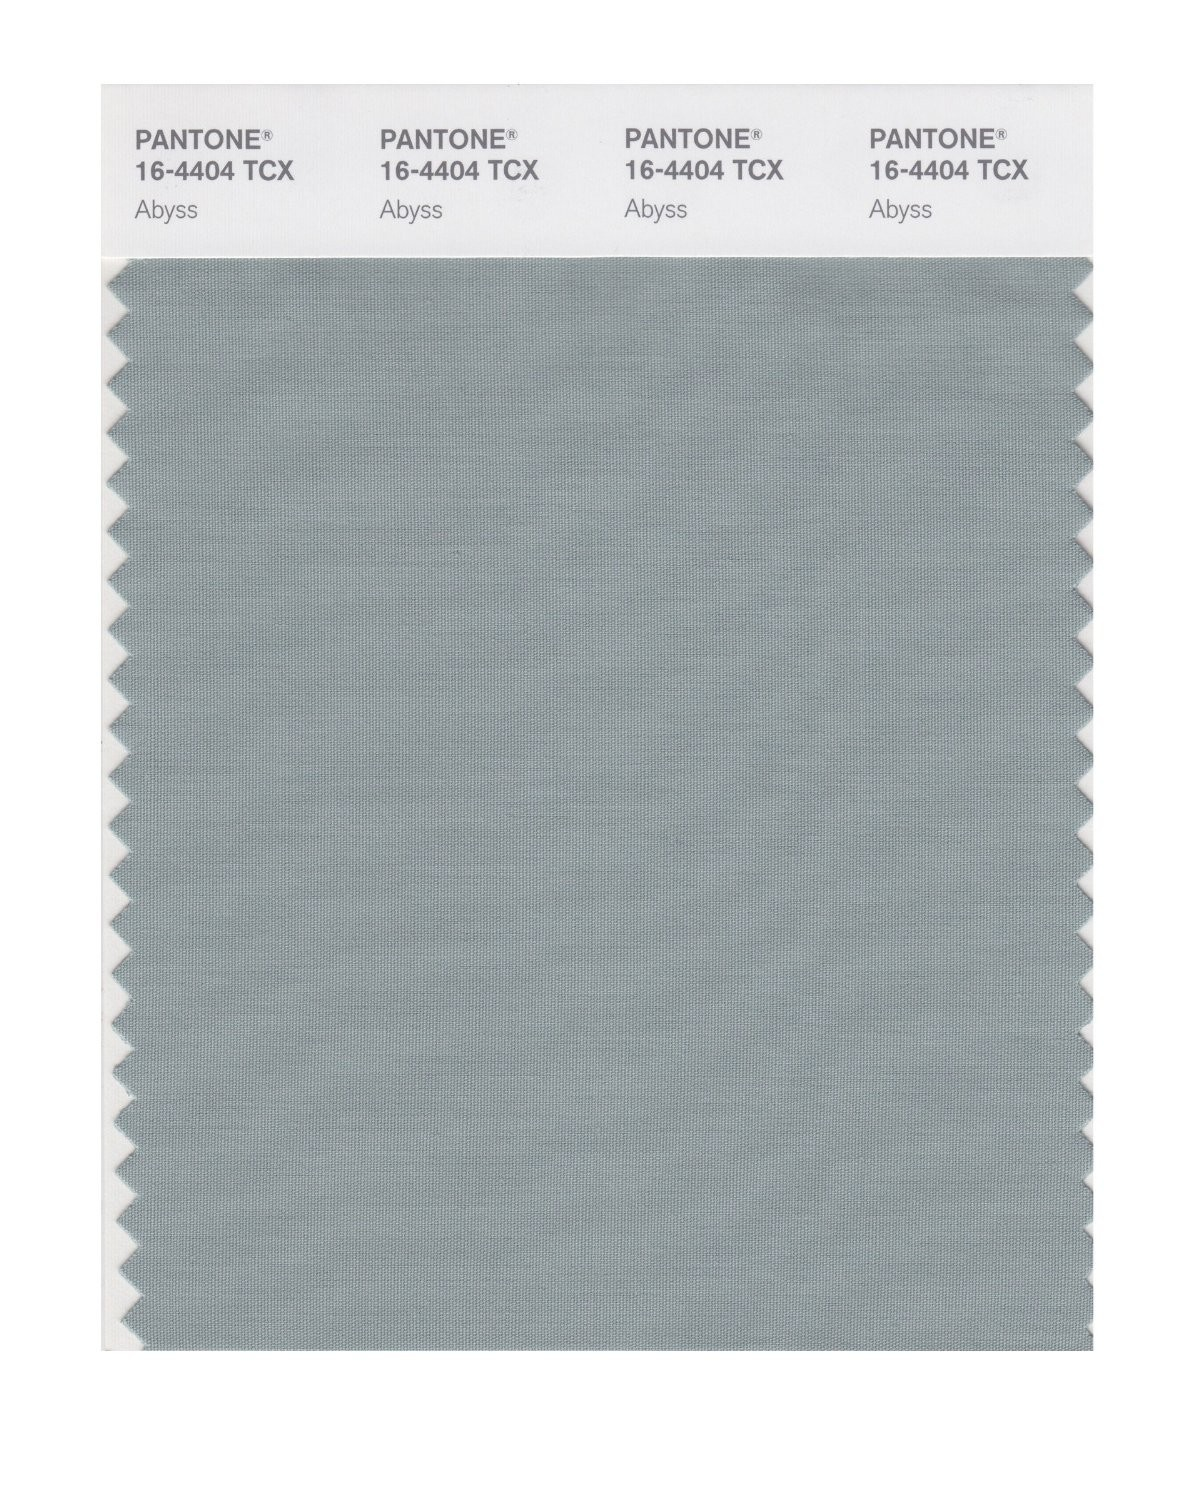 Pantone 16-4404 TCX Swatch Card Abyss